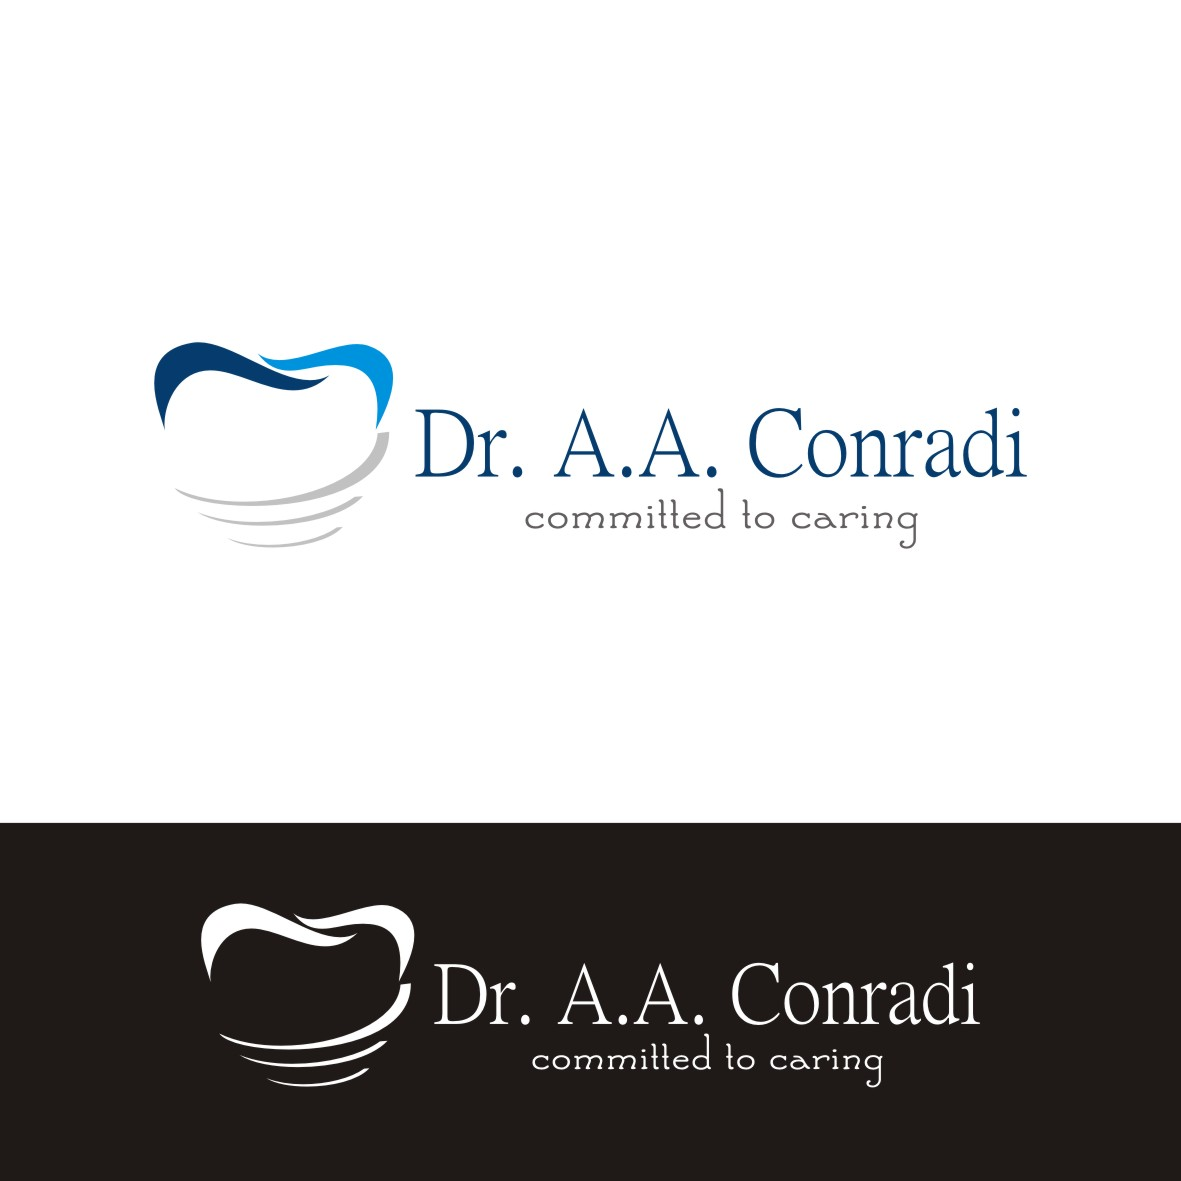 Logo Design by arteo_design - Entry No. 43 in the Logo Design Contest Unique Logo Design Wanted for Dr. A.A. Conradi.